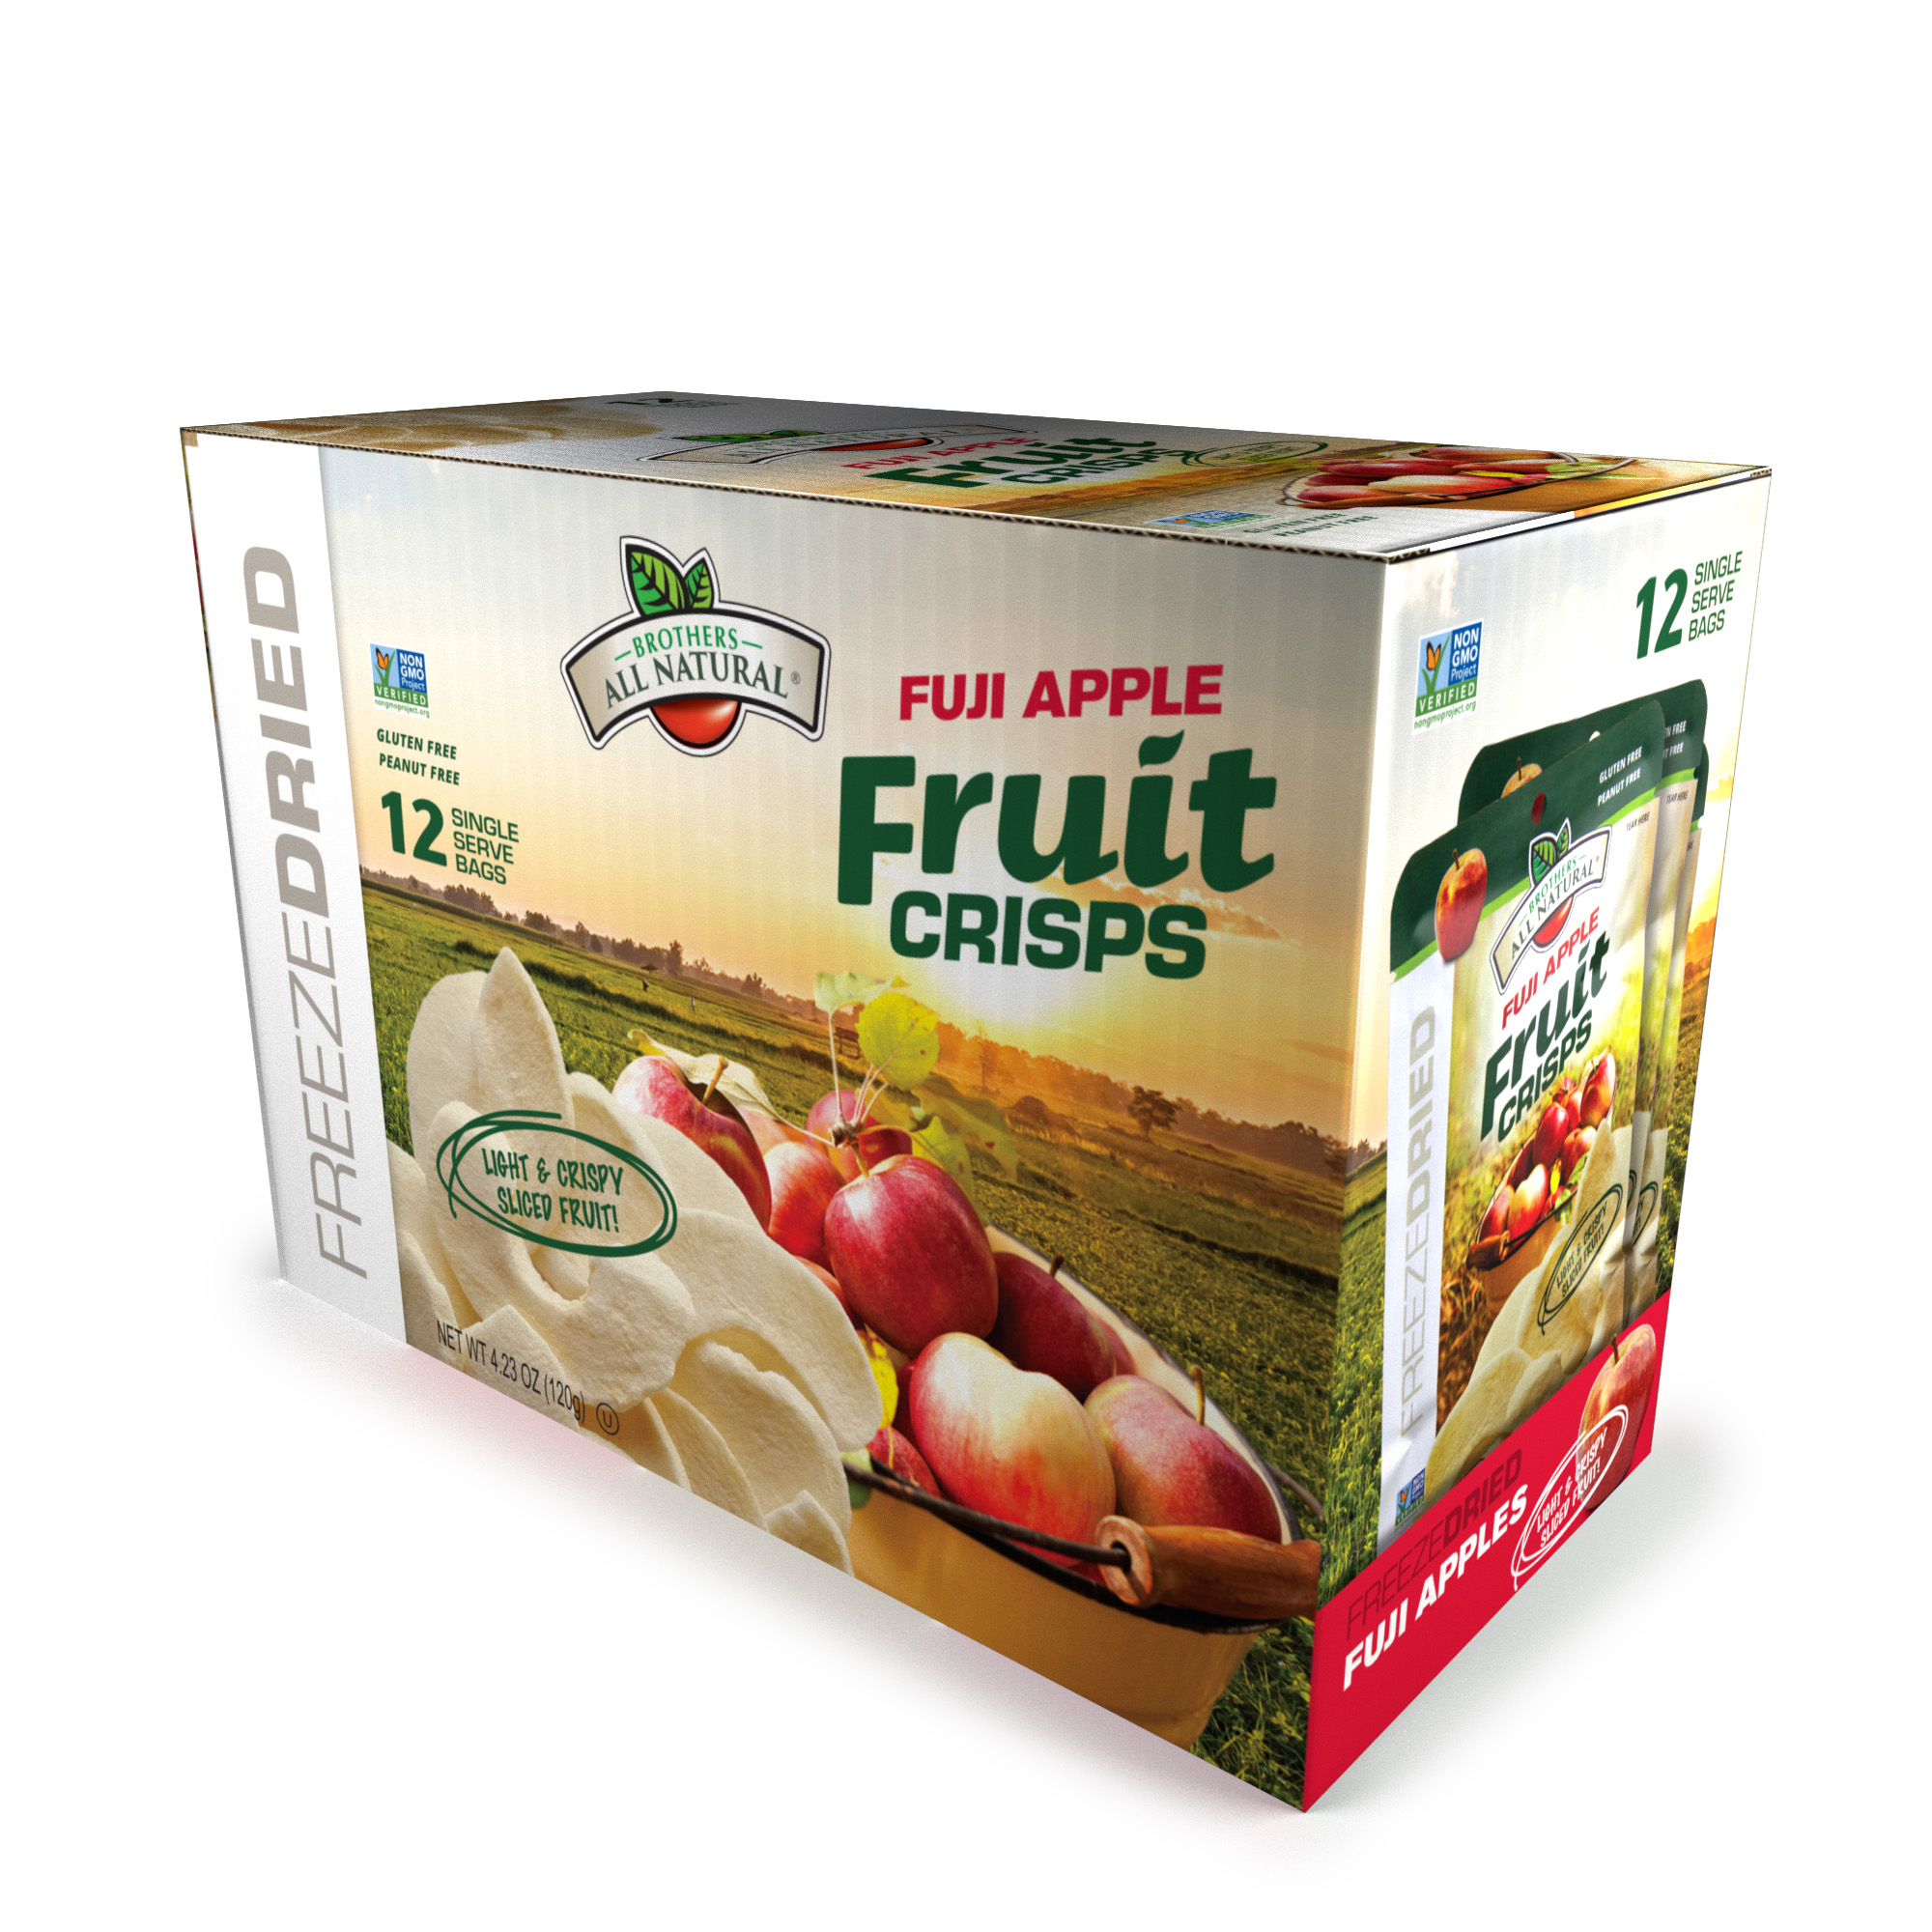 Brothers-ALL-Natural Fuji Apple Crisps, 0.35 Ounce Bags (Innerpack of 12)